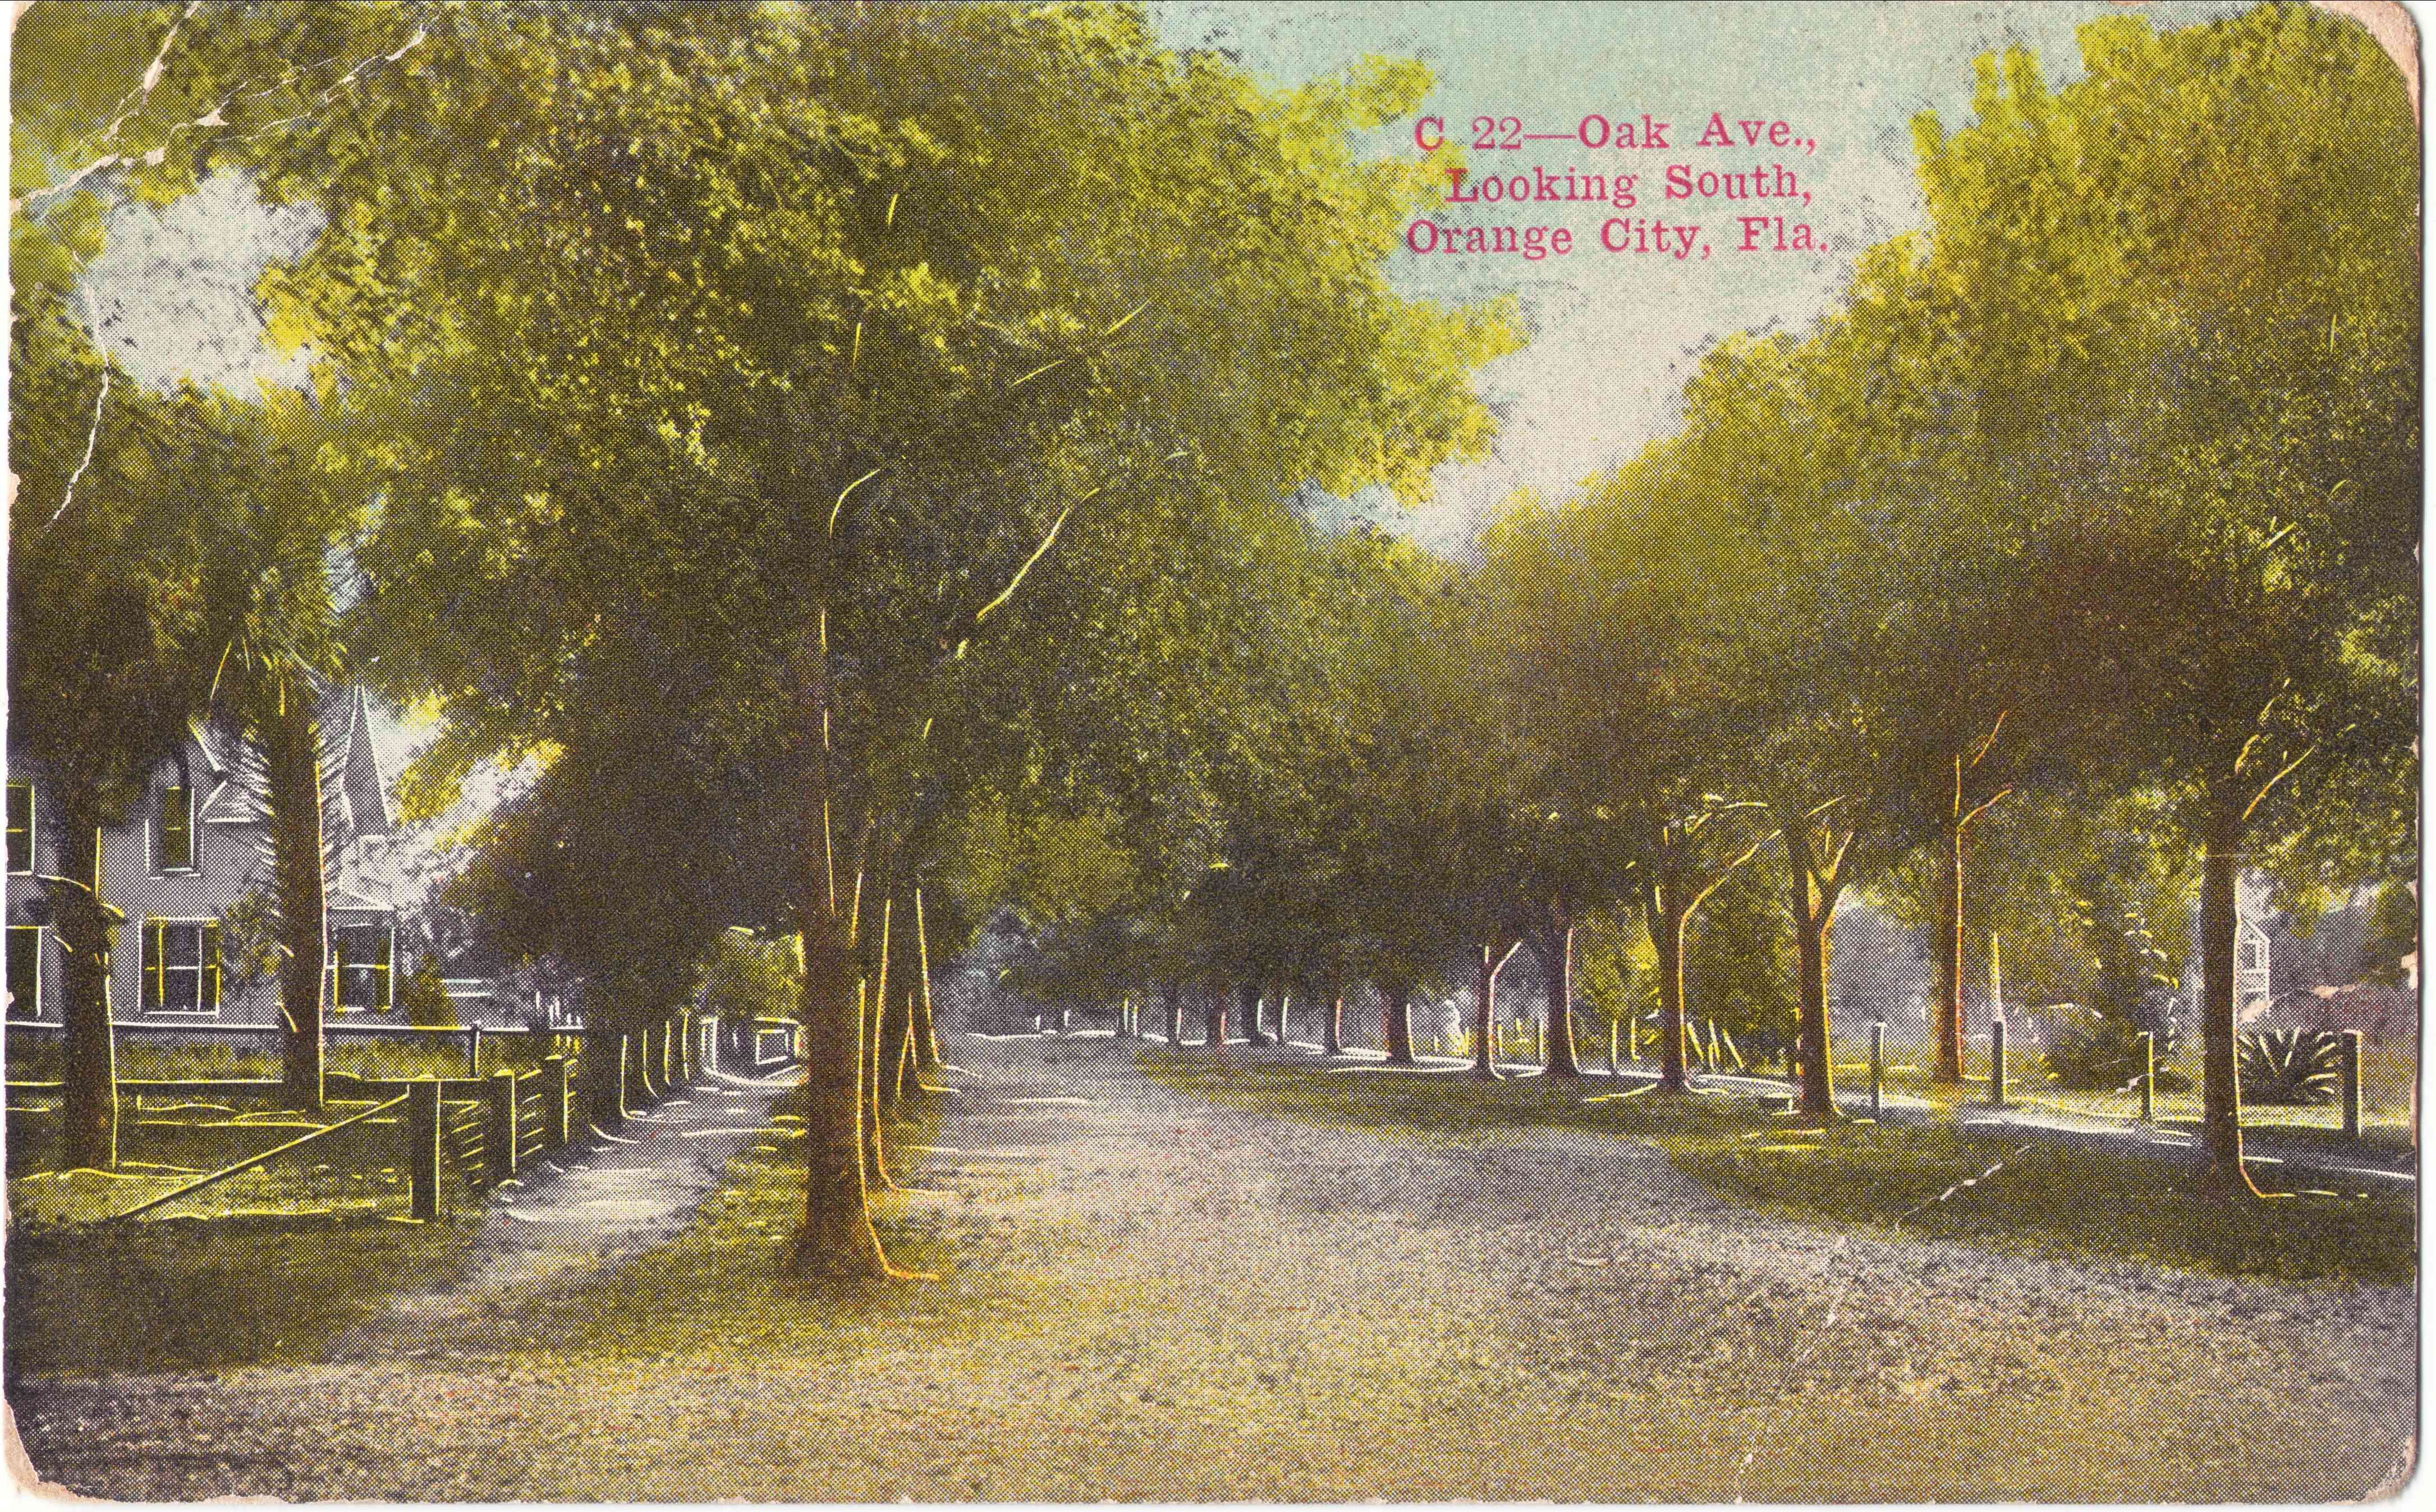 """C-22 Oak Ave., Looking South, Orange City, Fla."" Post card c.1913.  Thursby house is just visible on the left side. Courtesy postcard collection of Kimberly Reading."